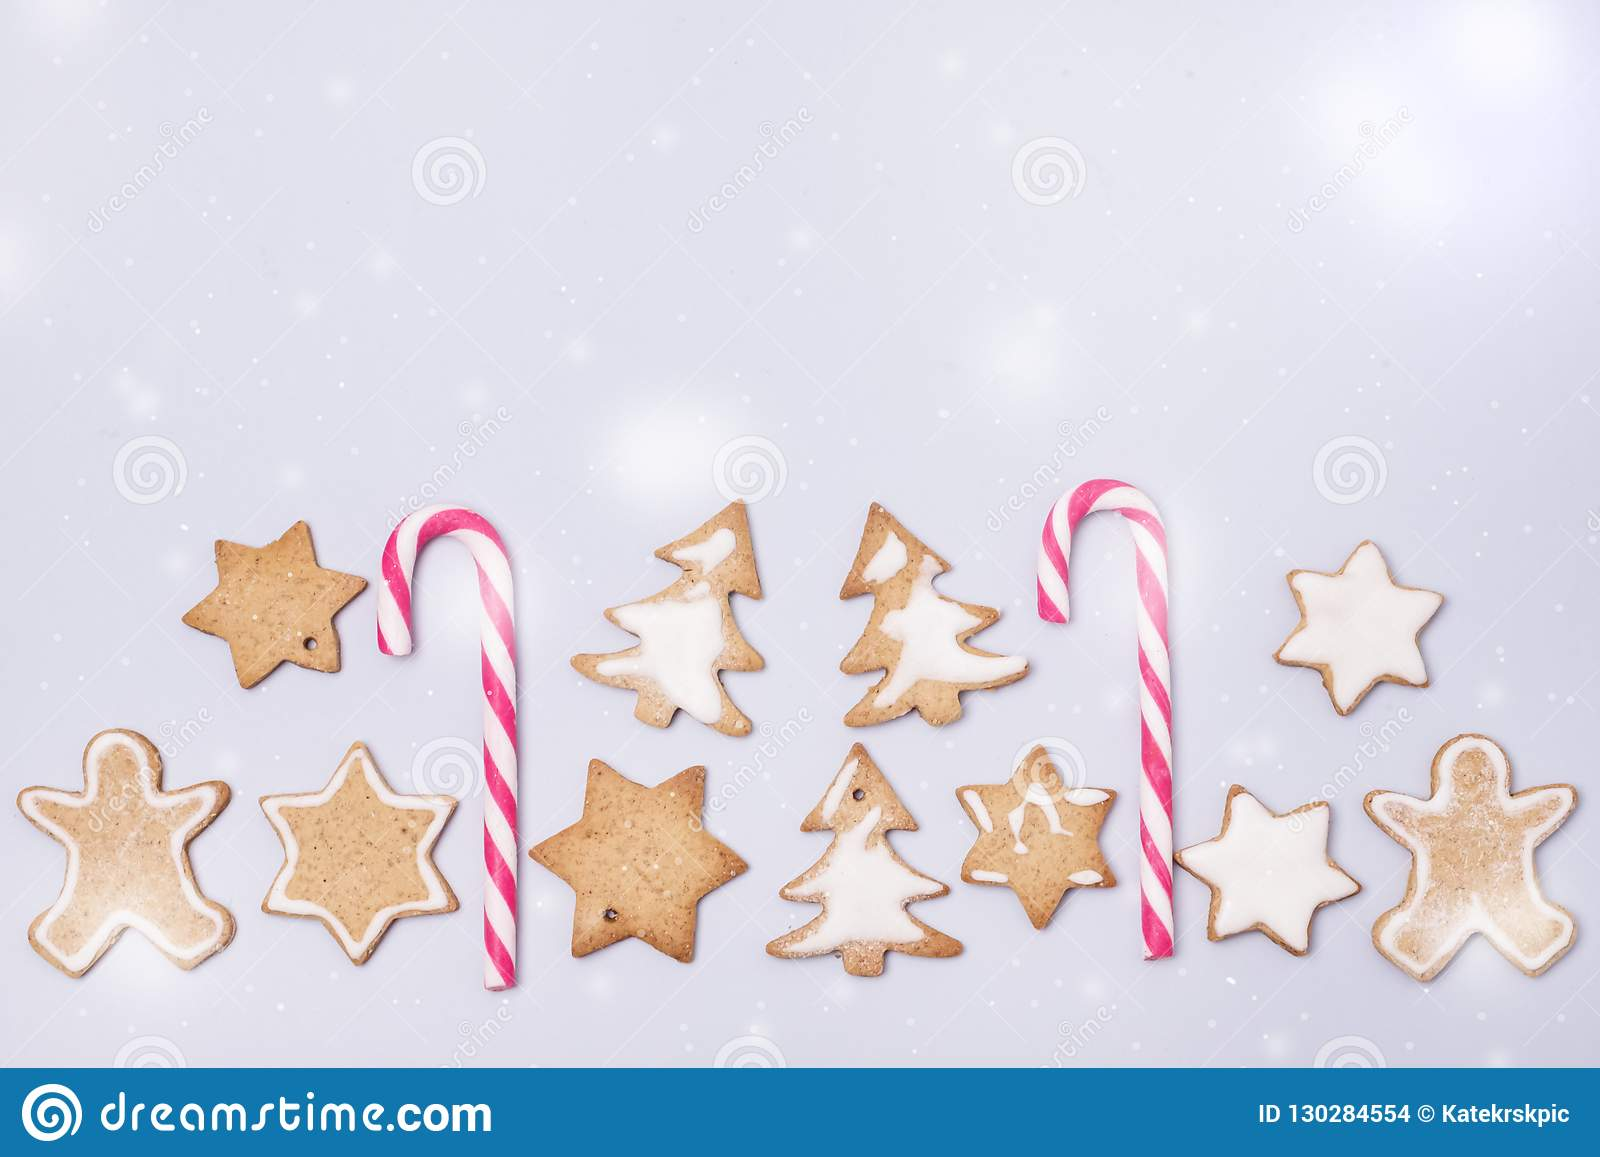 Christmas Homemade Gingerbread Cookies on Light Blue Background Flat Lay Holidays Concept Christmas Background Copy Space Horizont